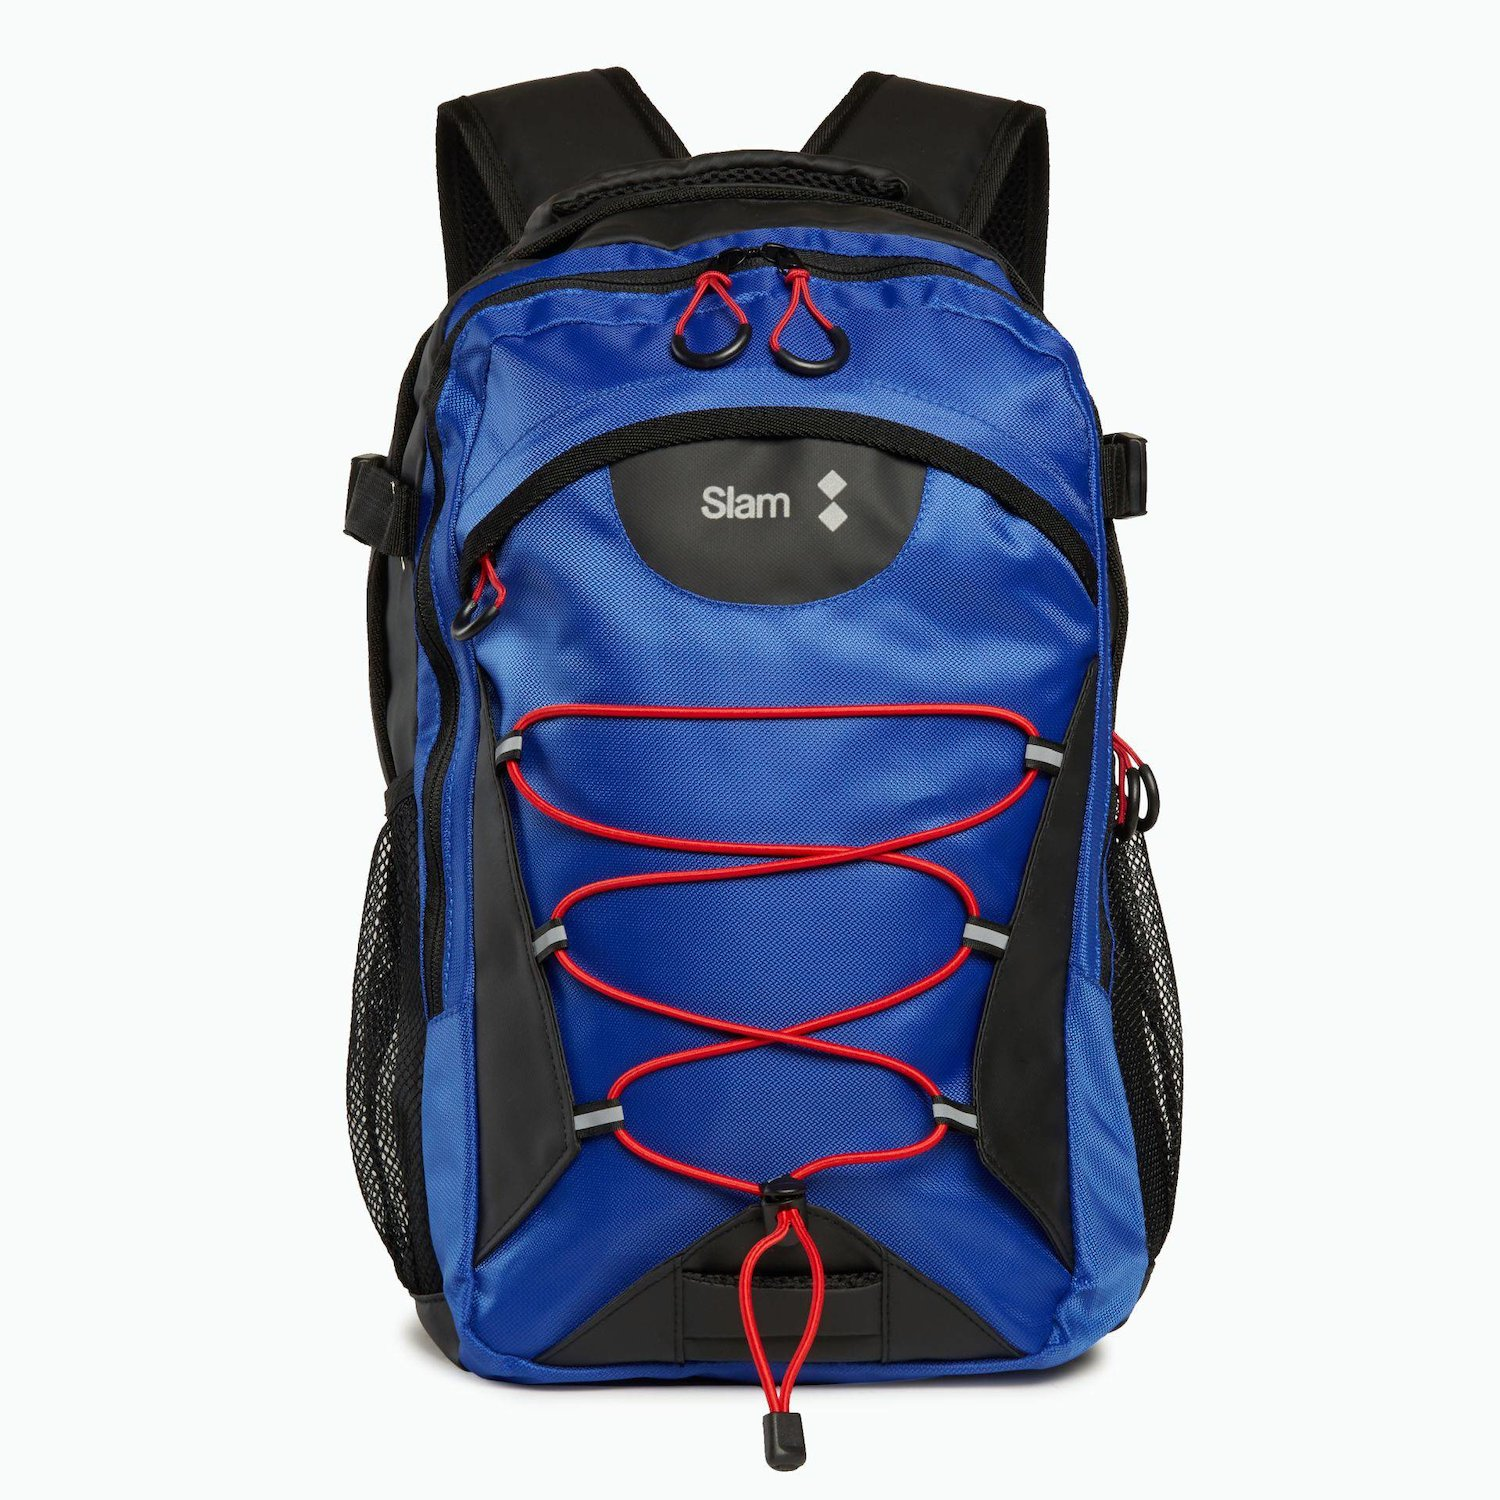 A234 backpack - Navy Blue